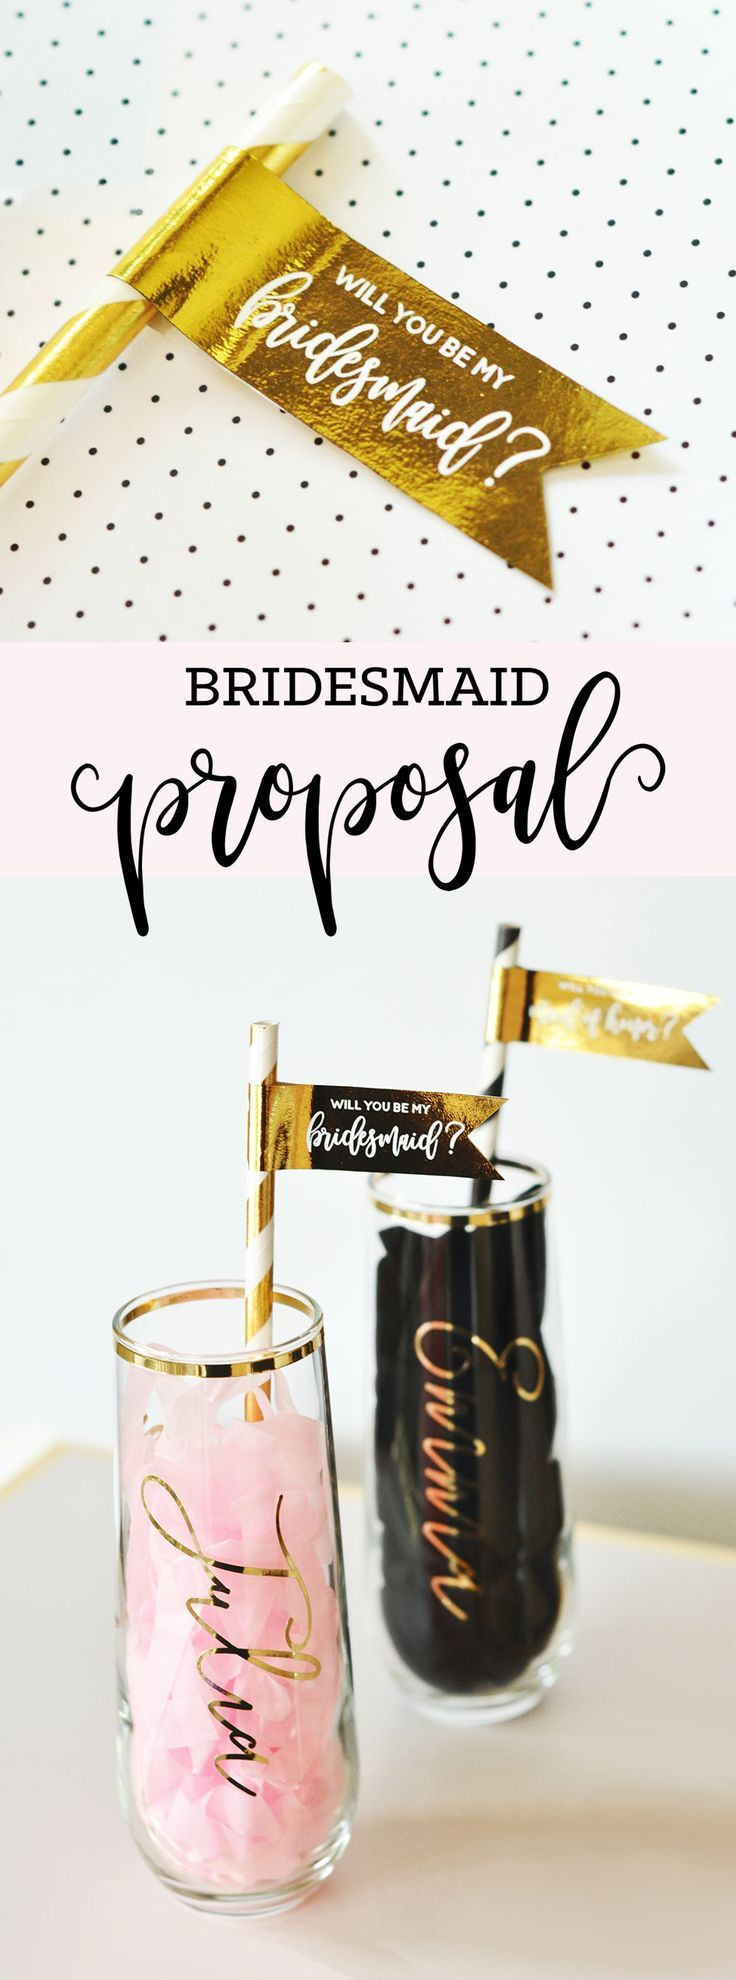 Bridesmaid Proposal Ideas | Will you be my Bridesmaid Gifts